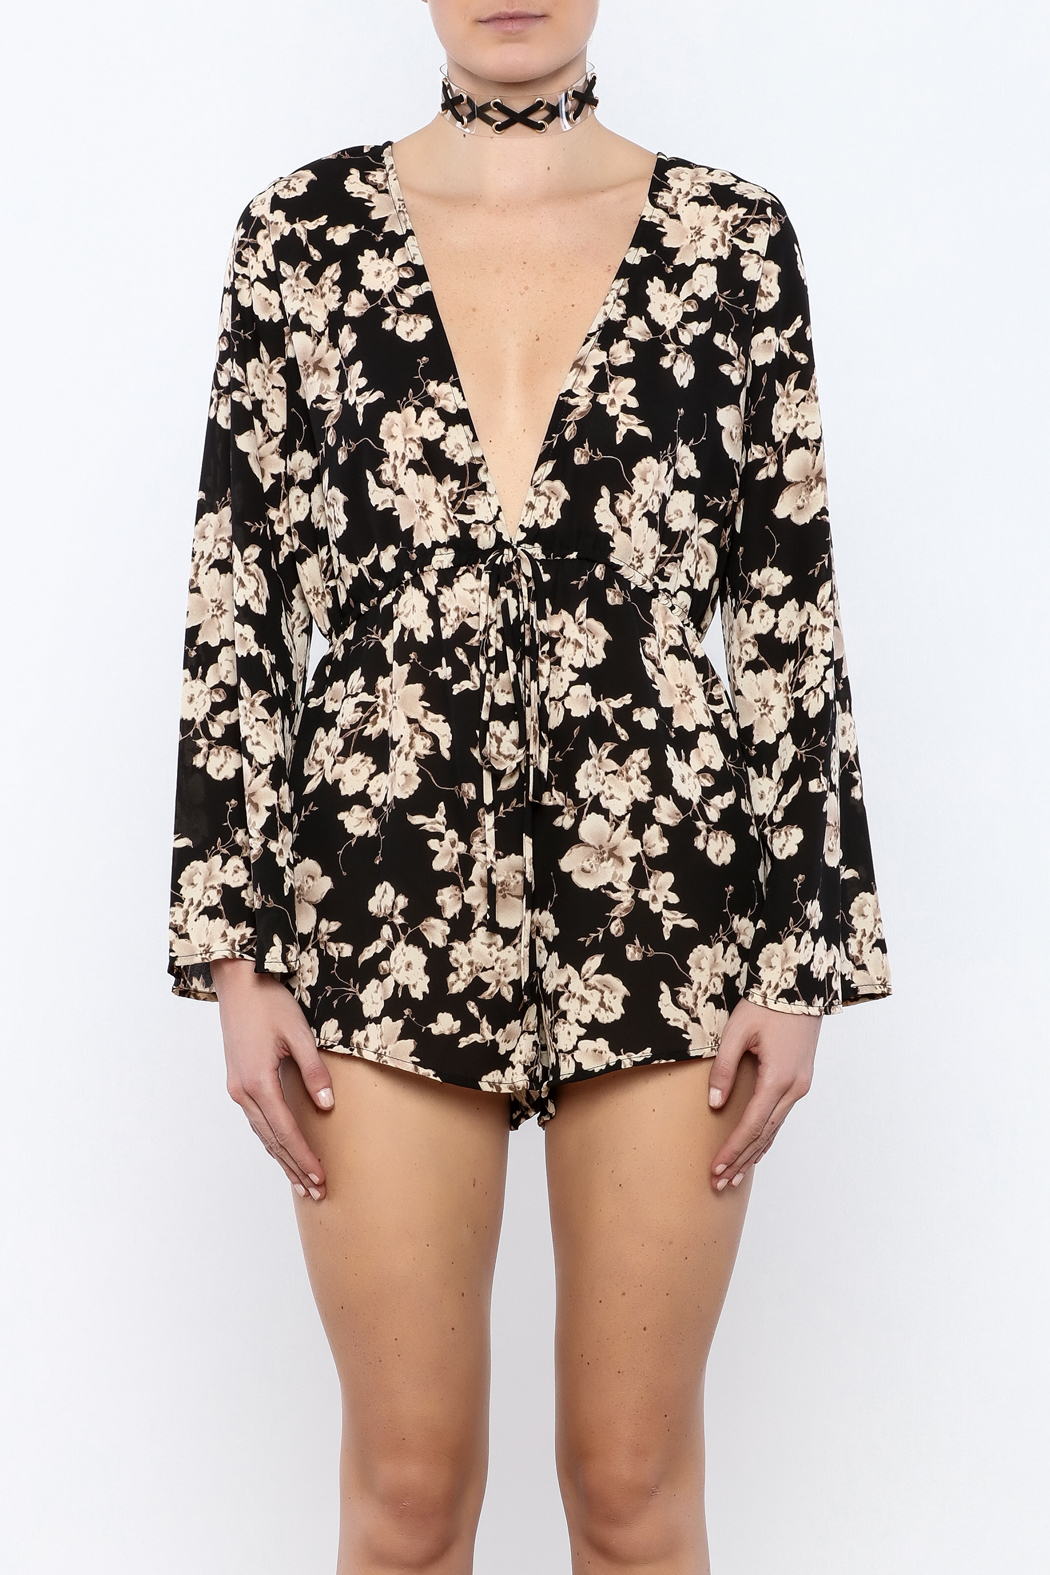 Coveted Clothing Black Floral Romper - Side Cropped Image